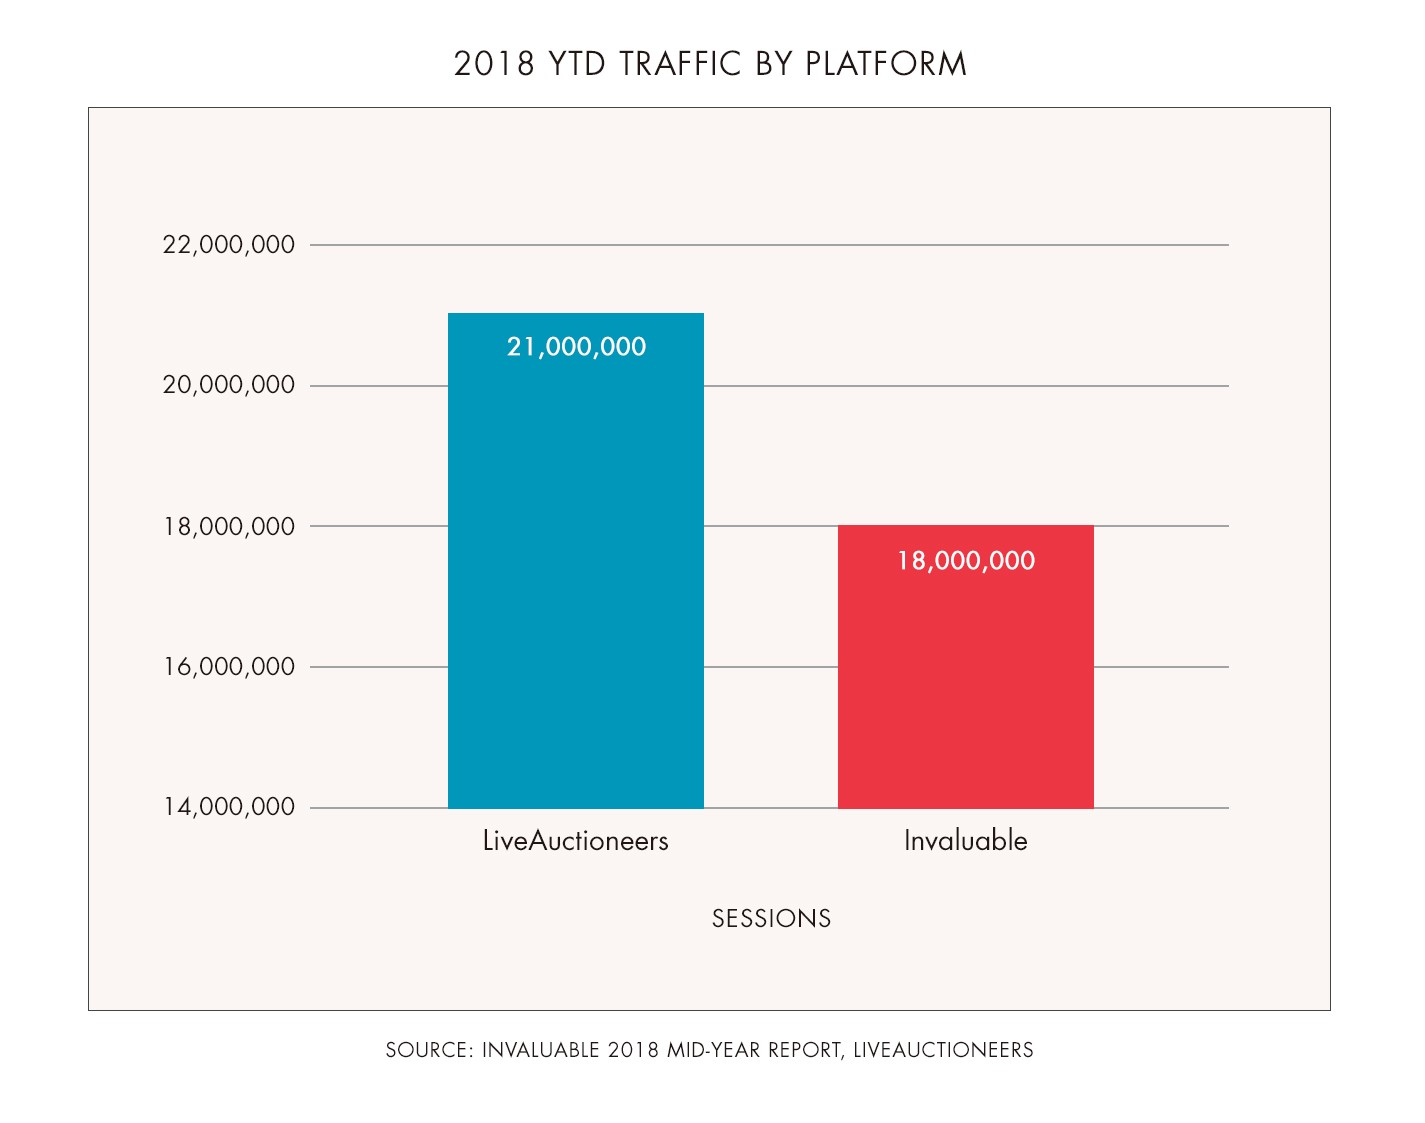 website traffic by platform